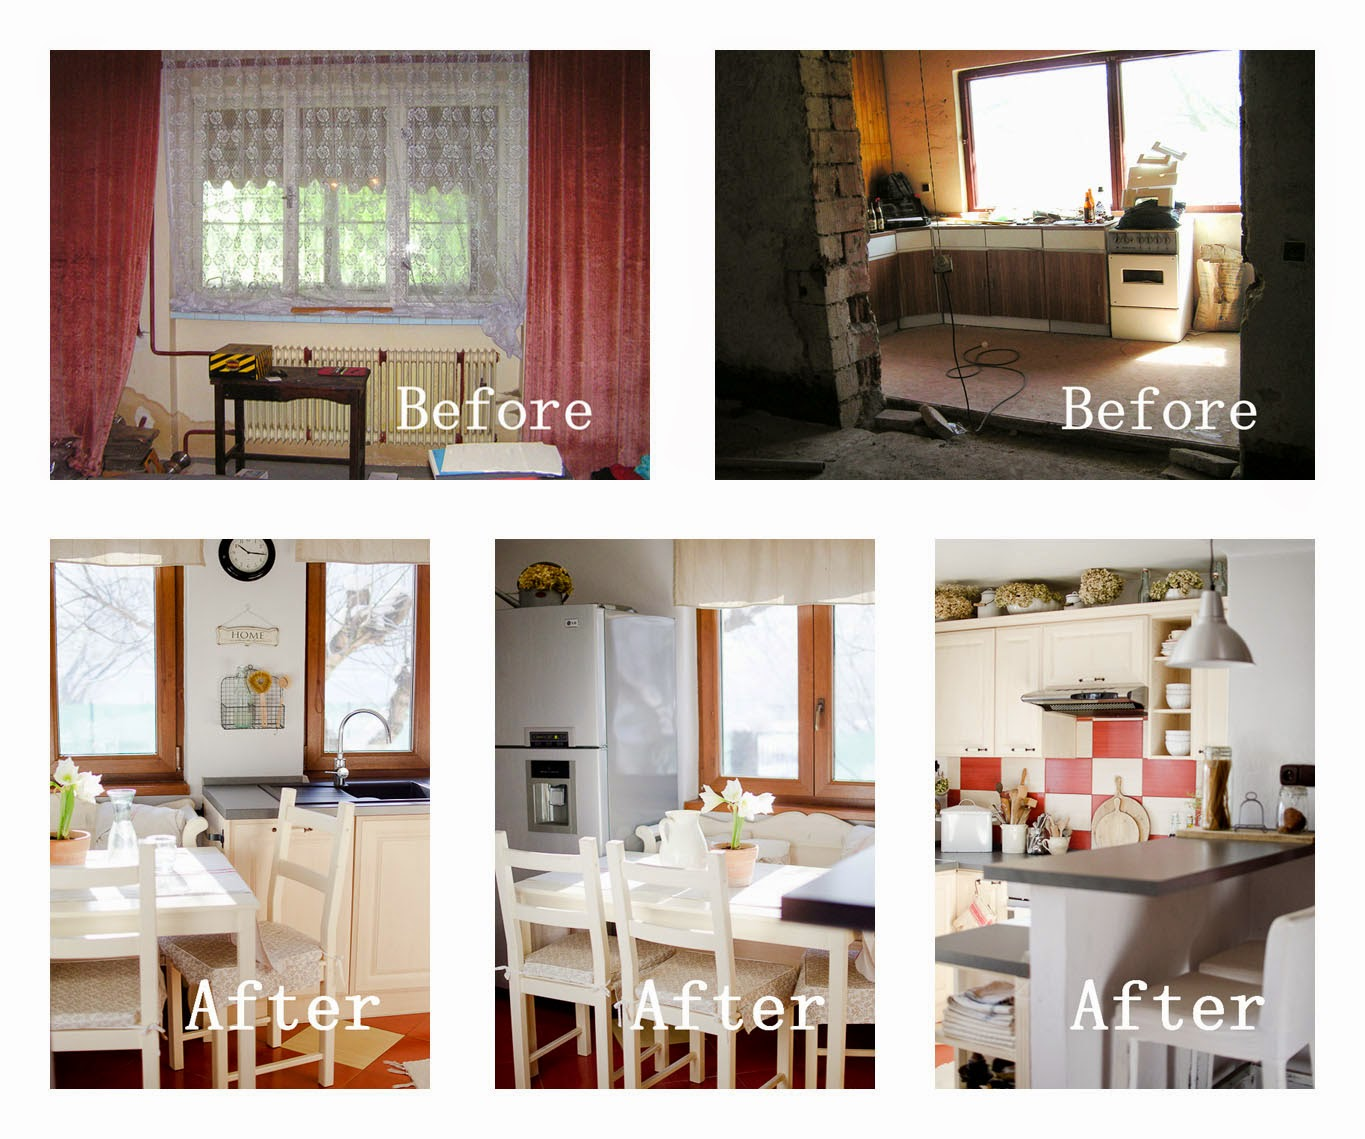 prairie charm kitchen before and after